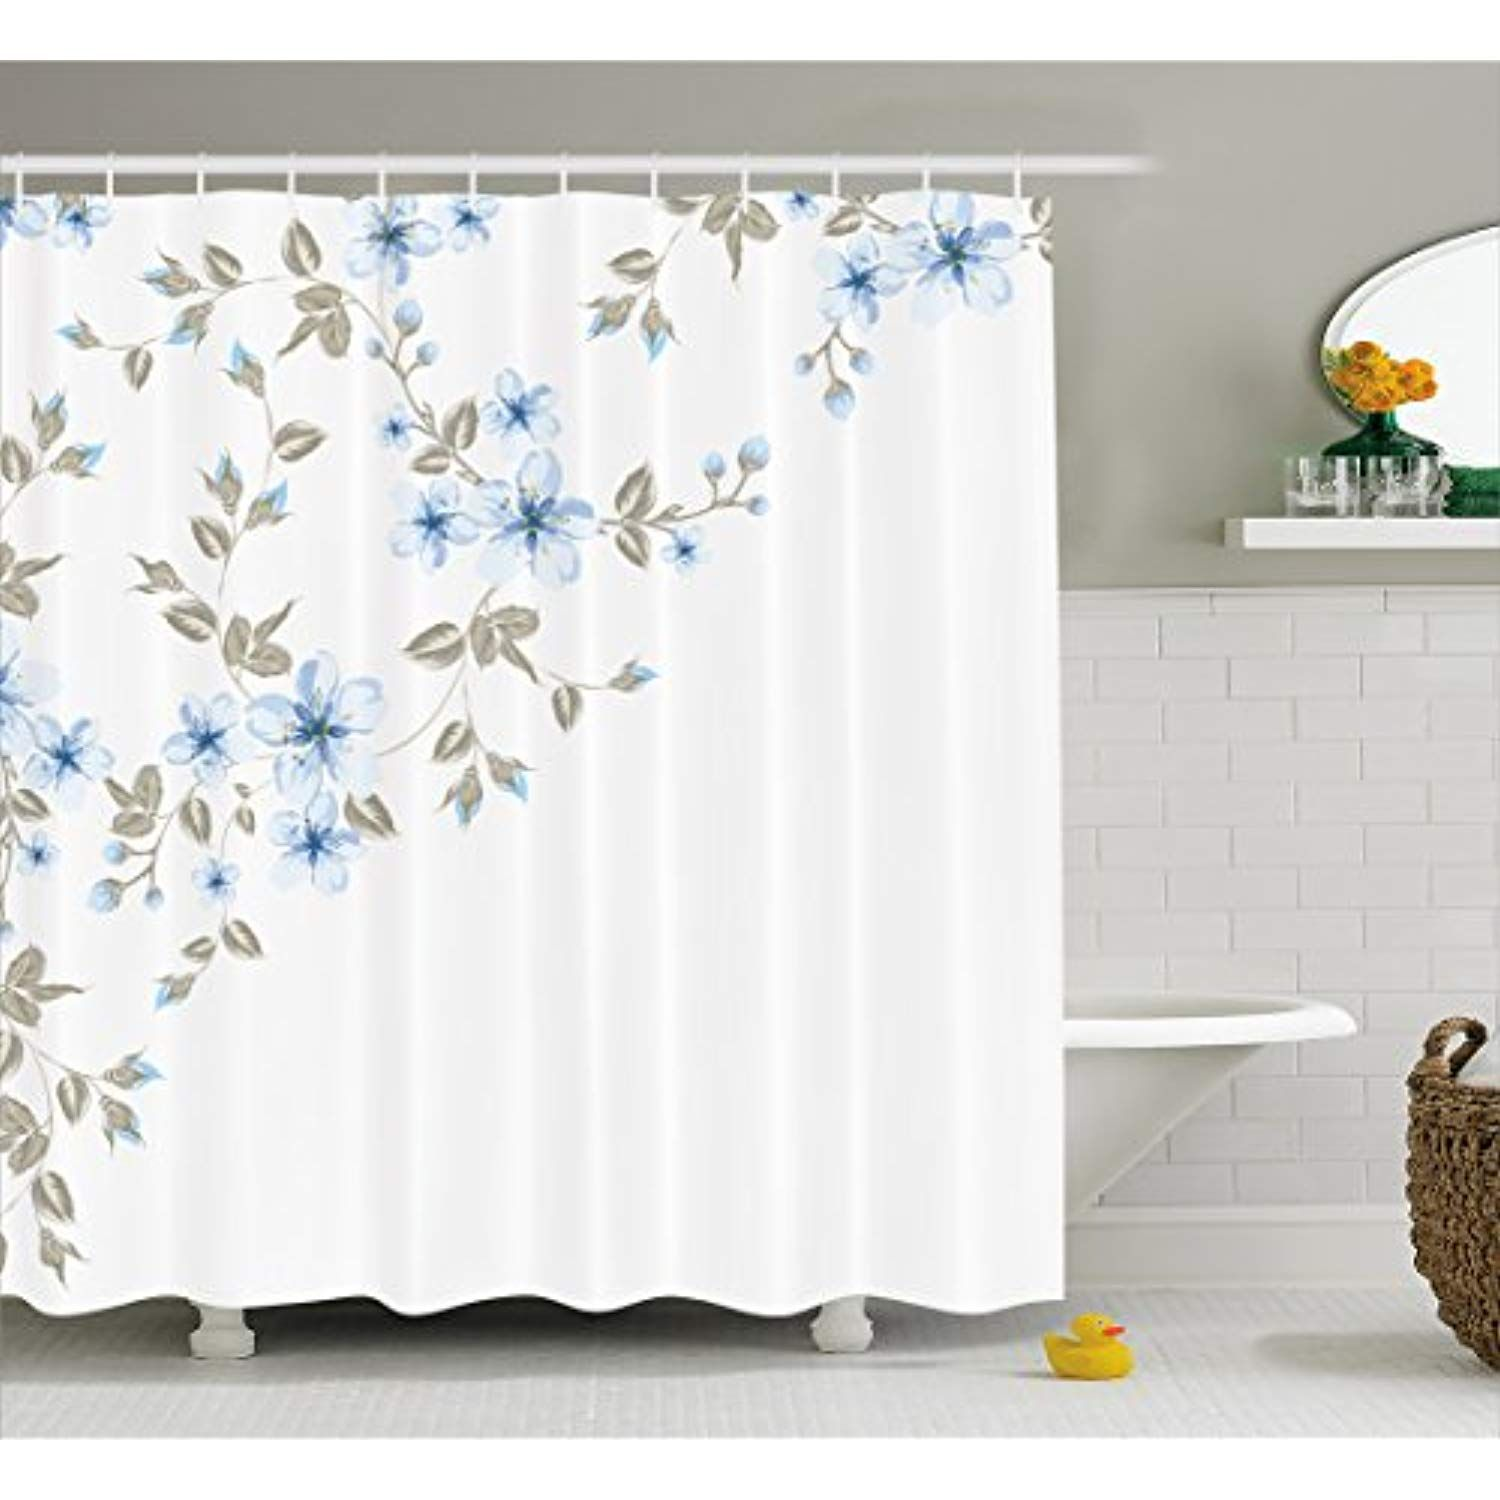 Shower Curtain 84 Inch In 2020 Shower Curtain Extra Long Shower Curtain Curtains